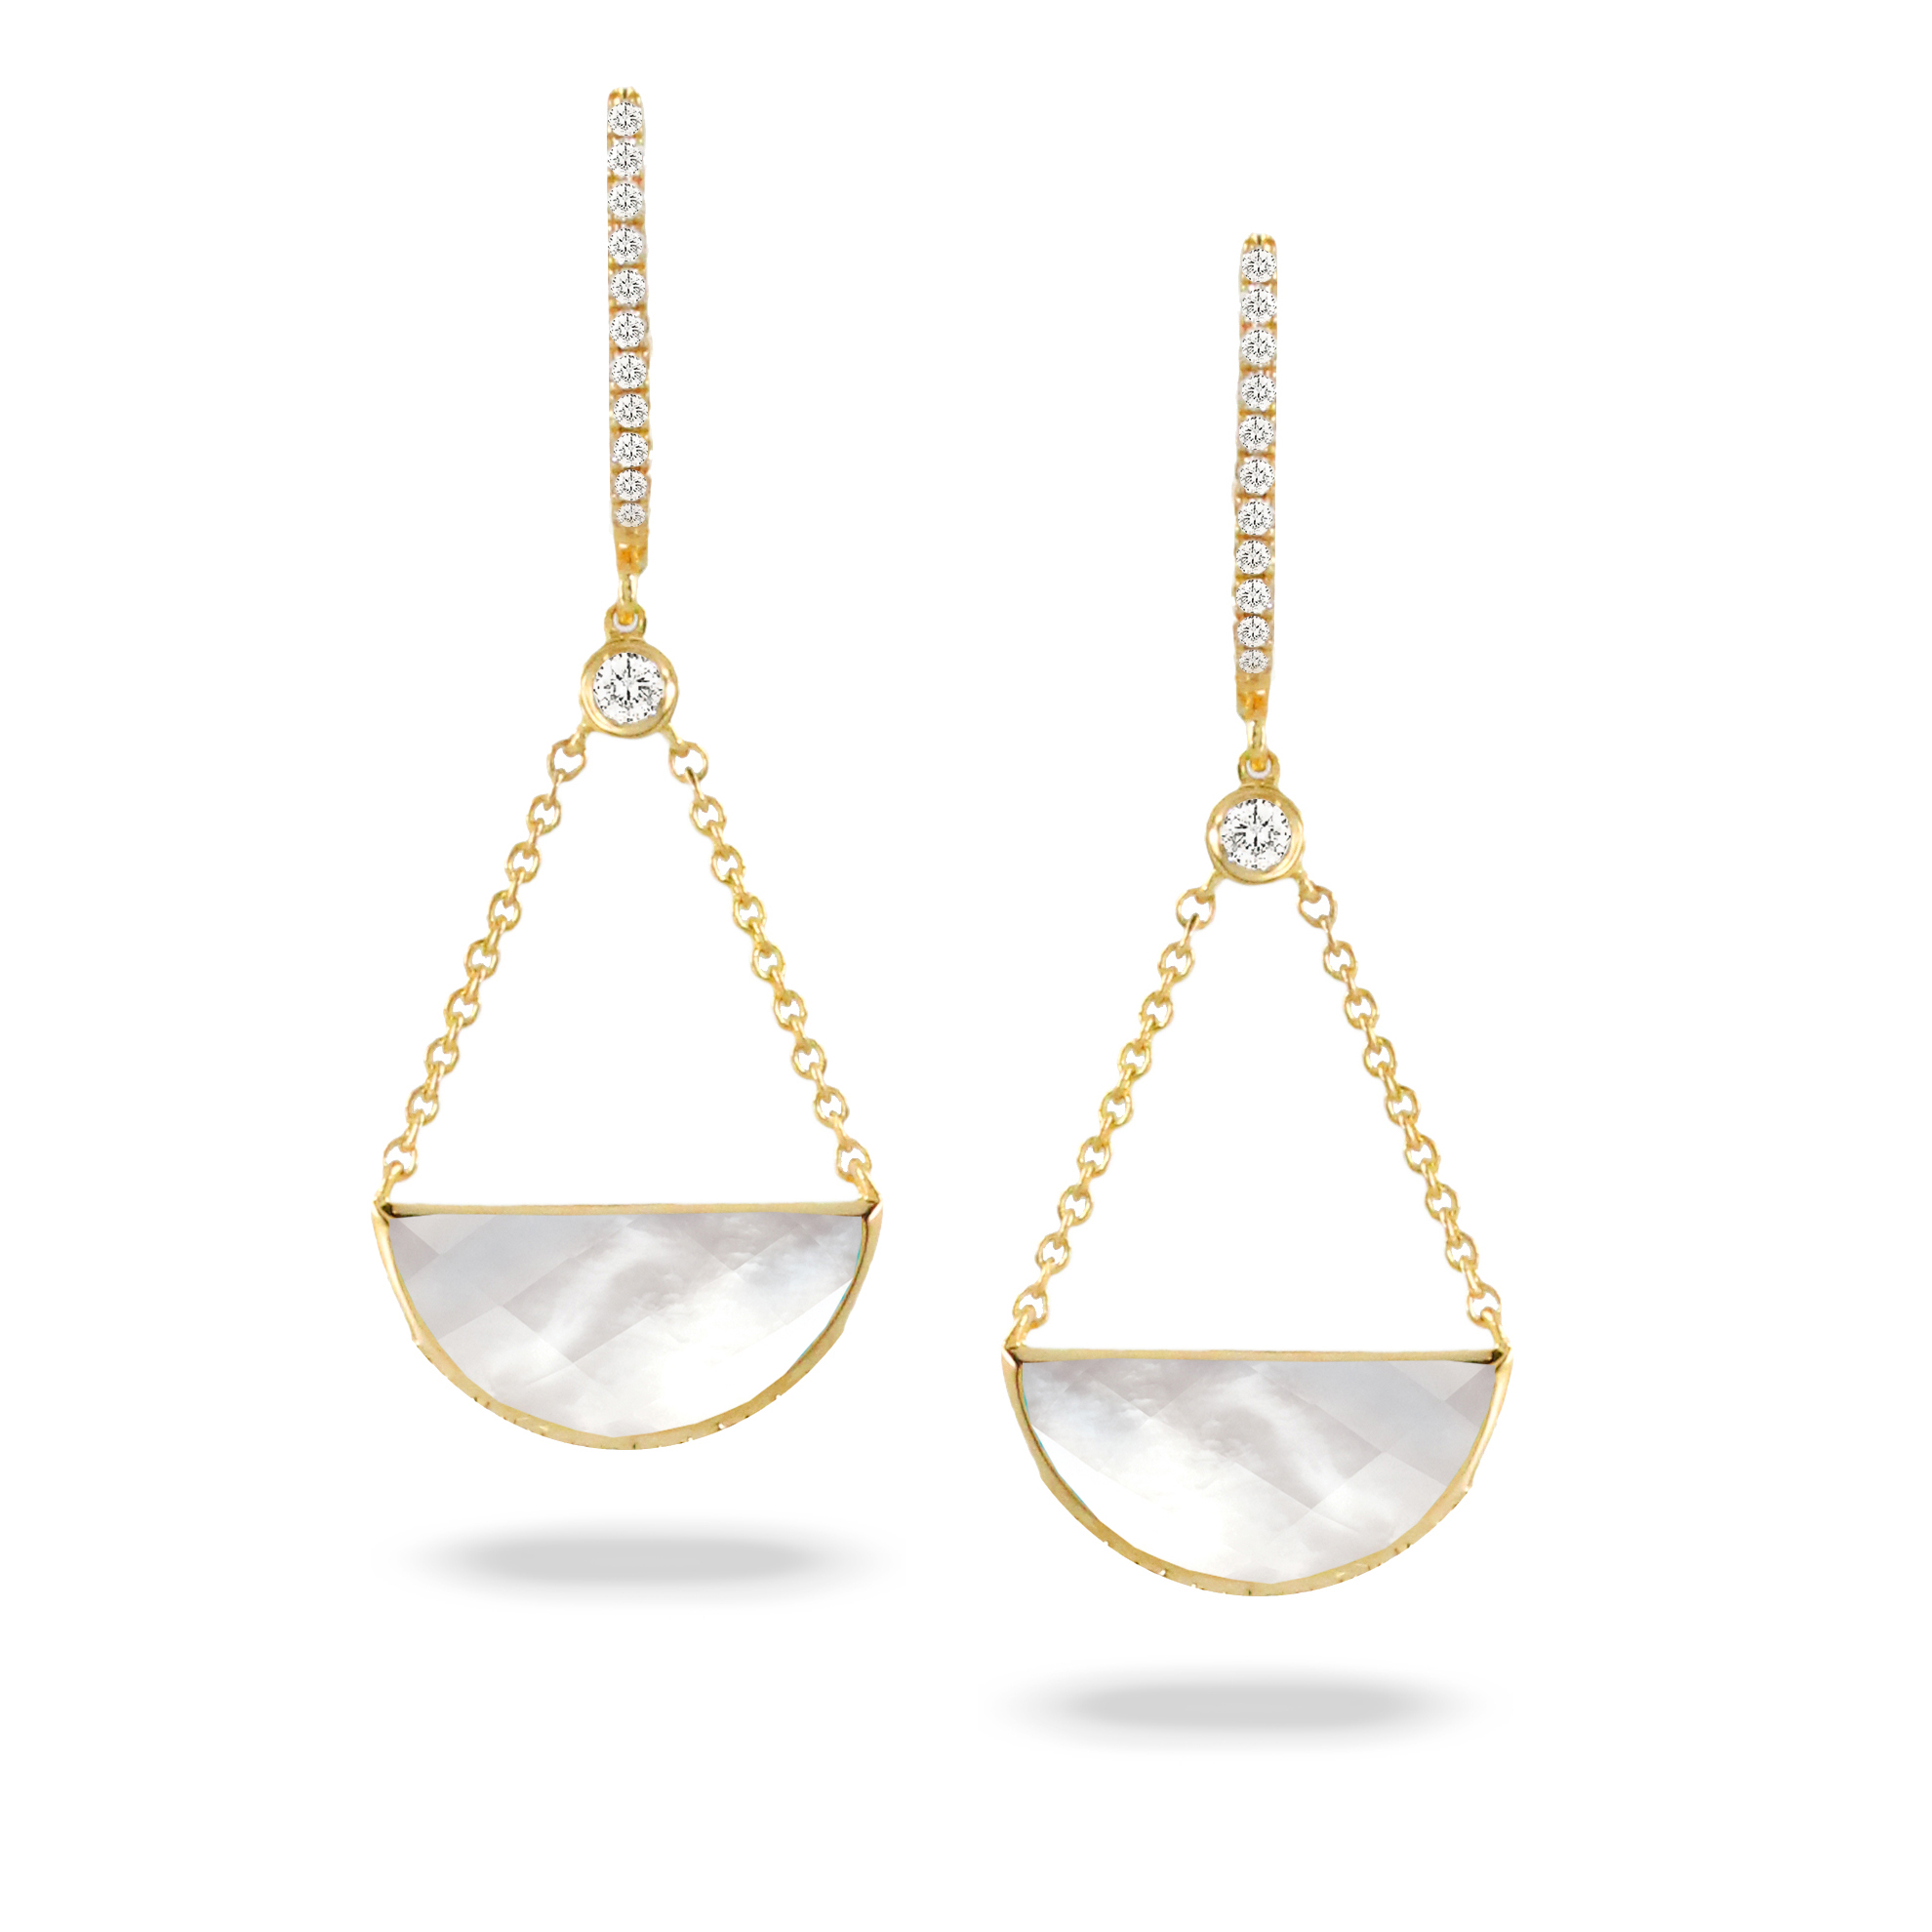 18K Yellow Gold Pearl Earrings by Dove